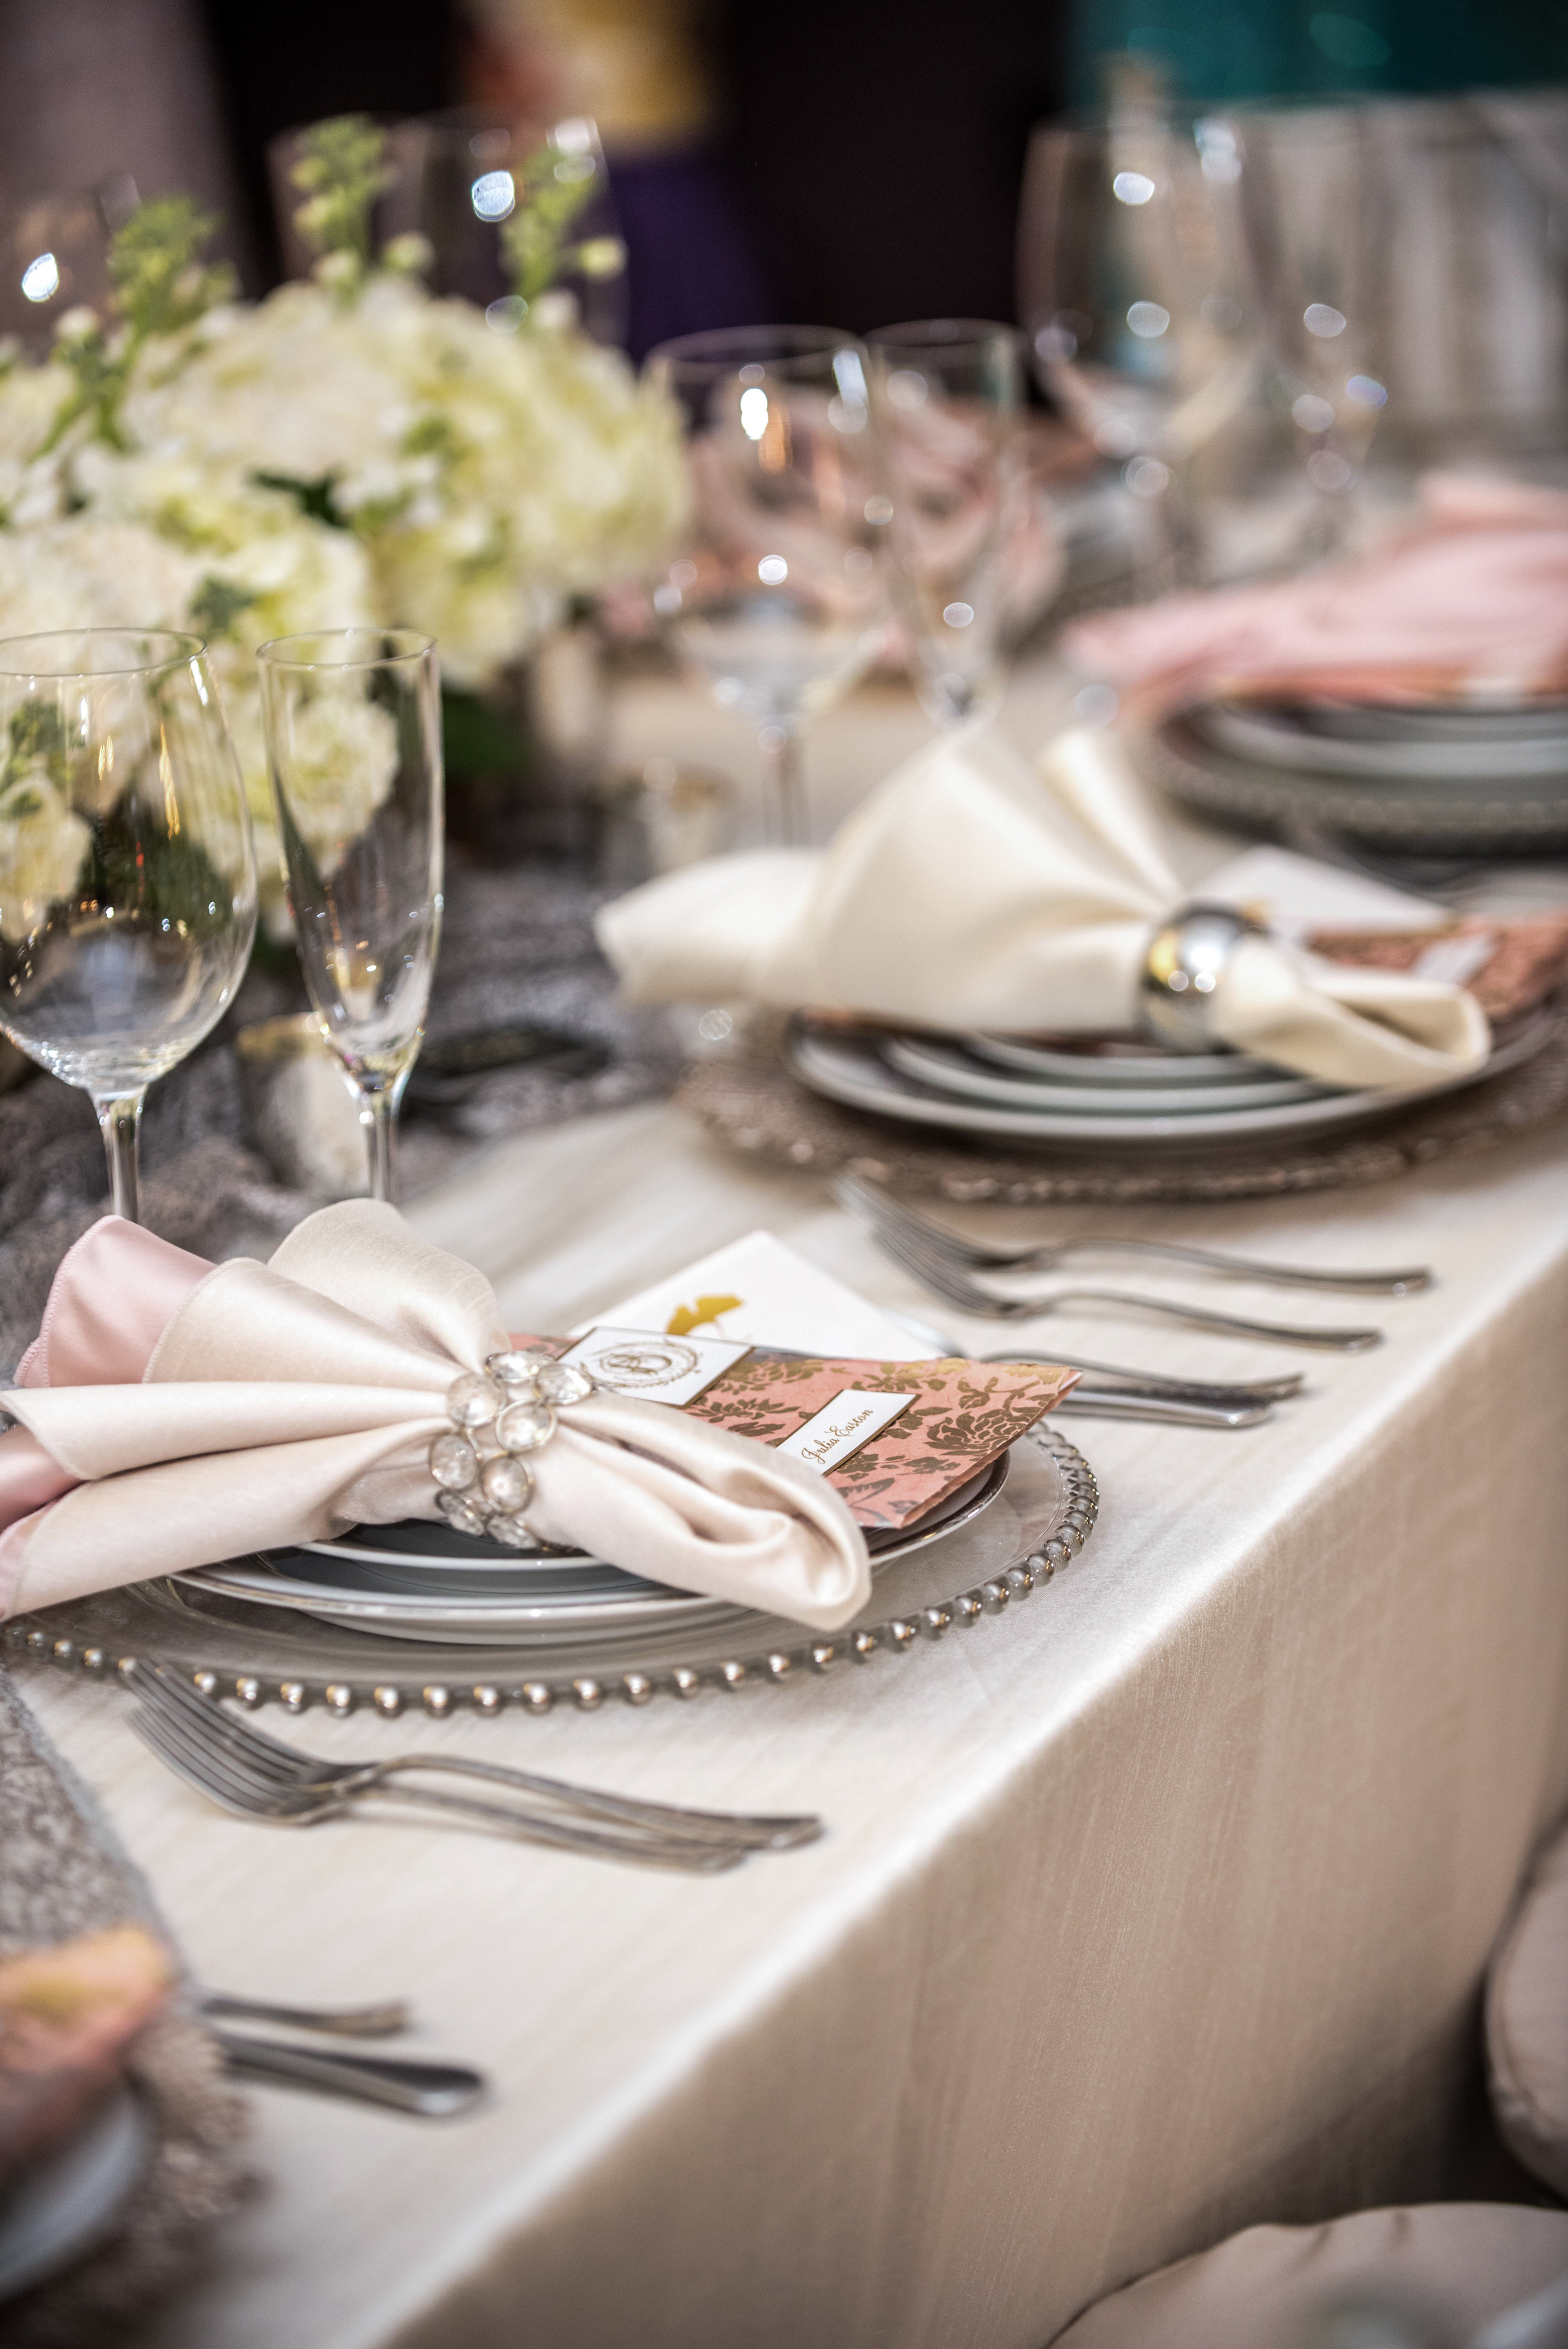 event-design-flowers-place-setting-theme-wedding-dramatic.jpg